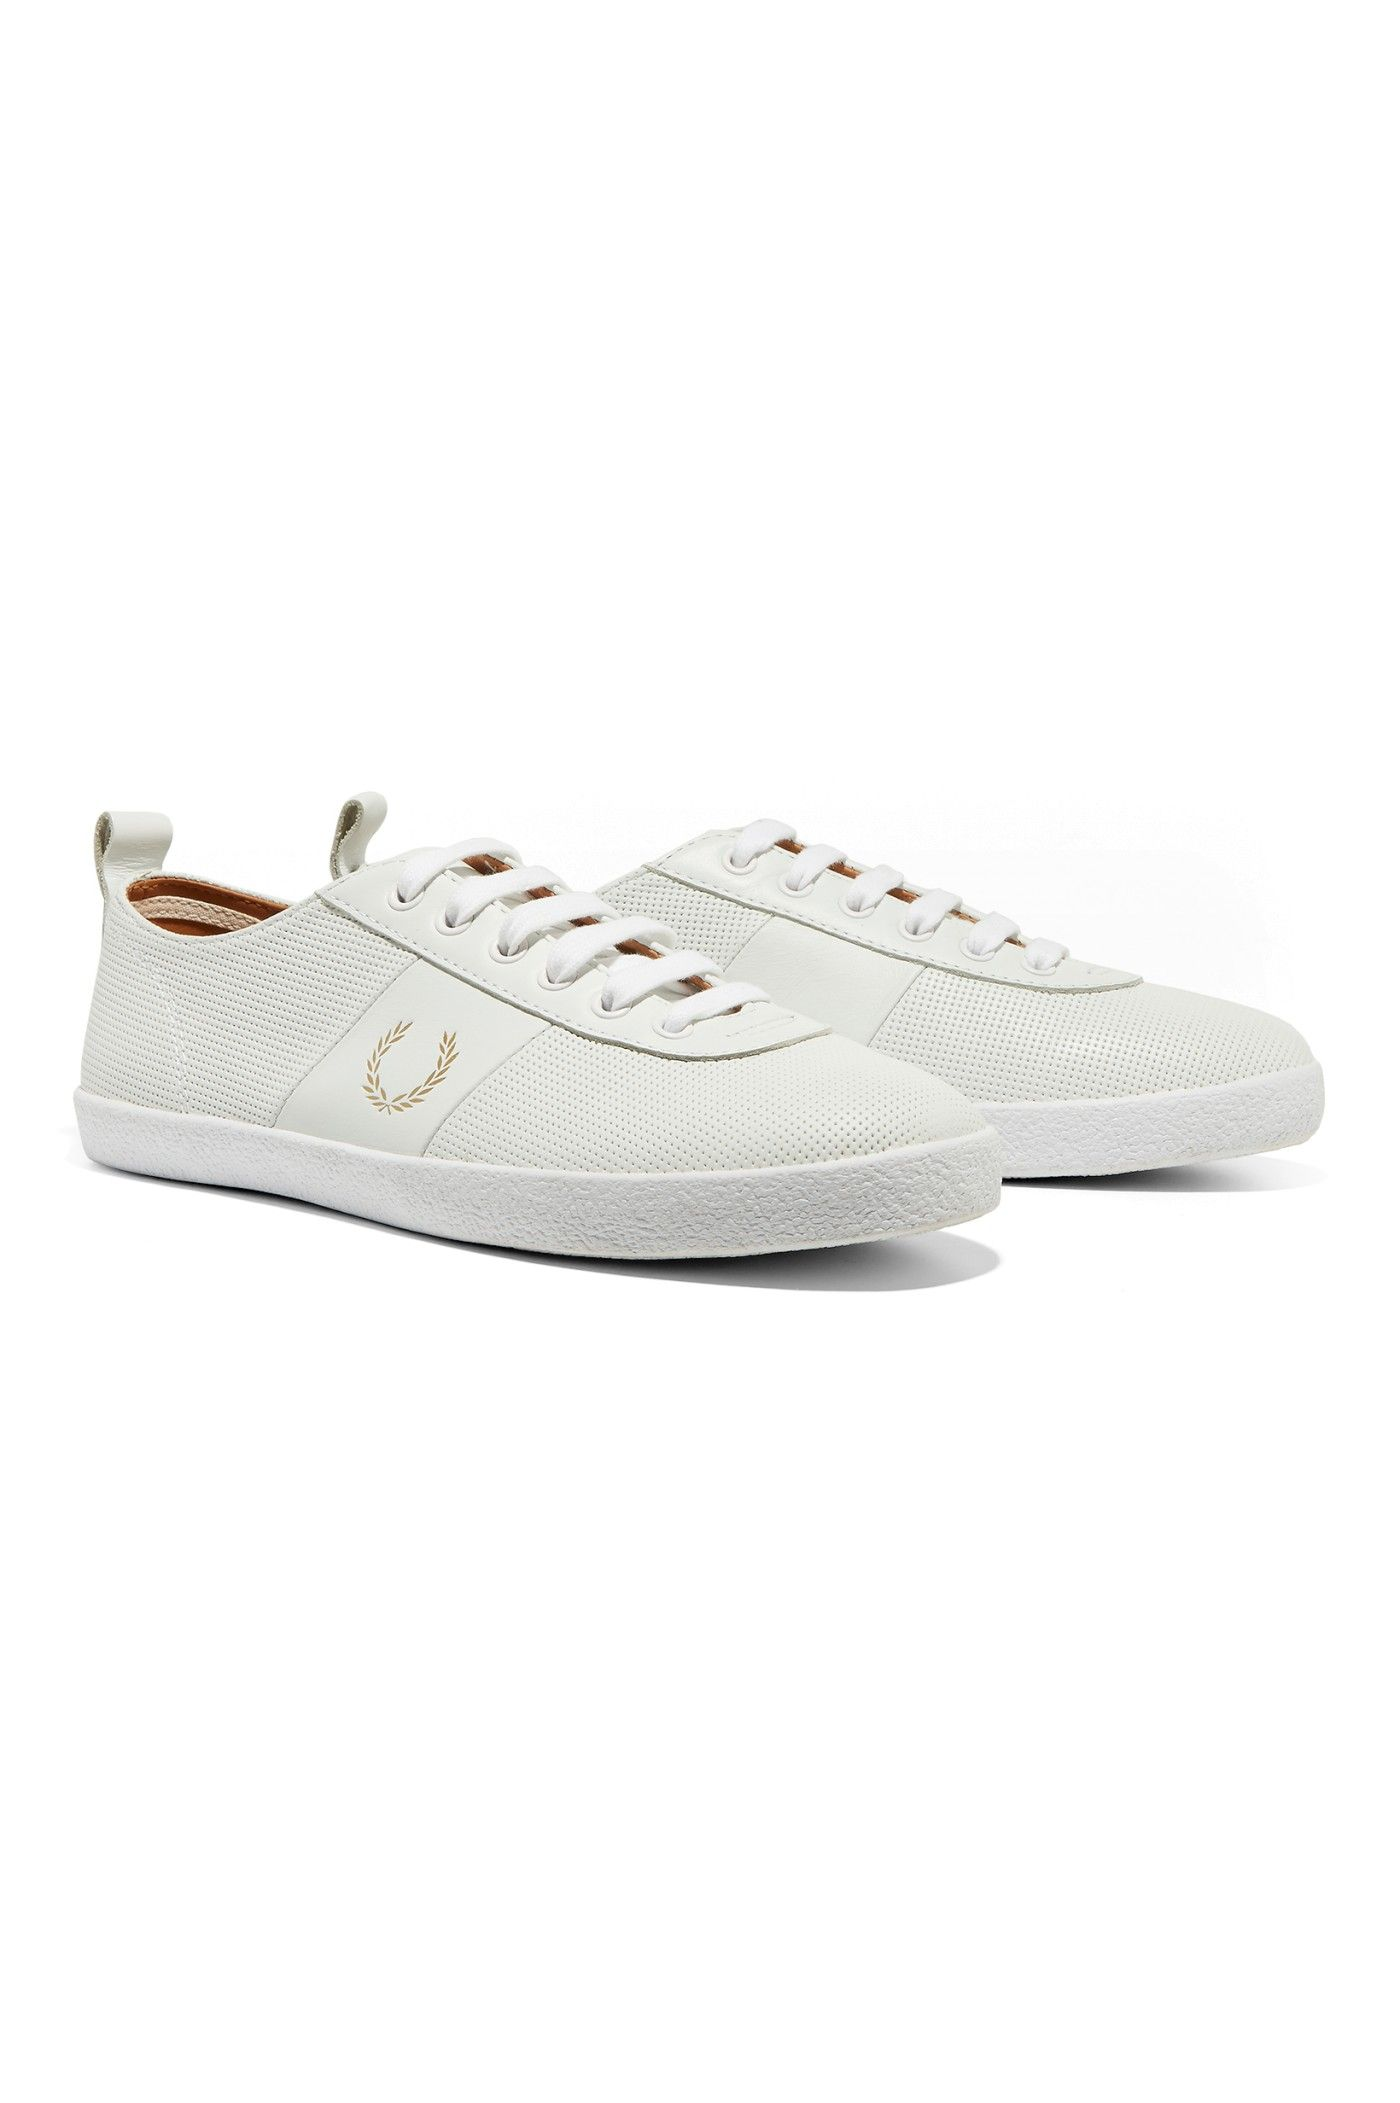 Fred Perry - Miles Kane Table Tennis Shoe Leather White  5ef82341363